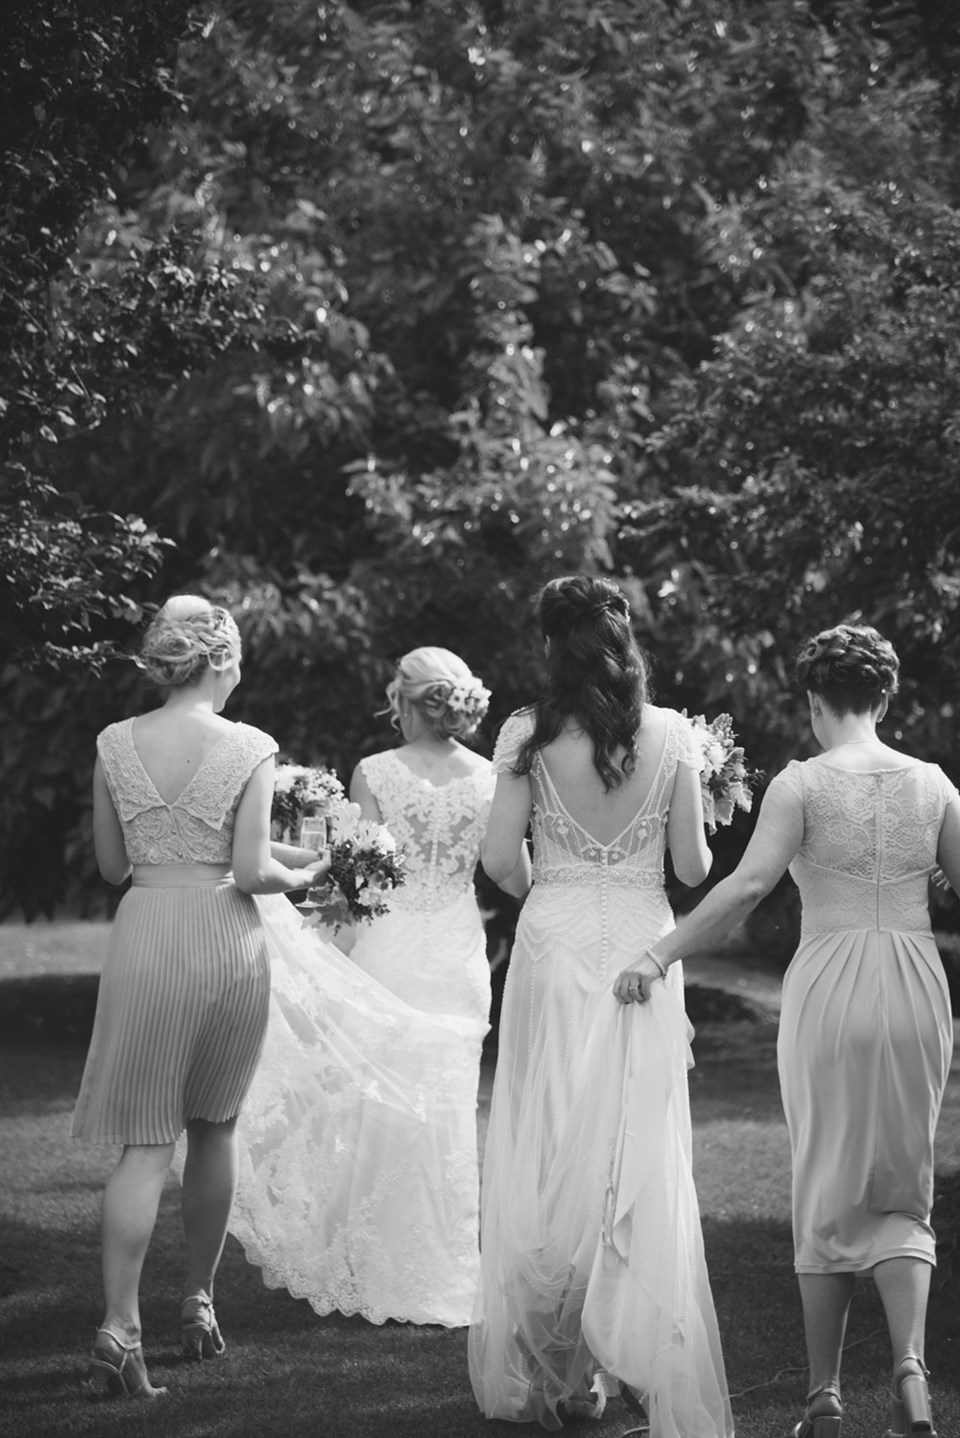 louise-belinda-janis-house-photography-toast-weddings-2a-wfnxpukmqvxp